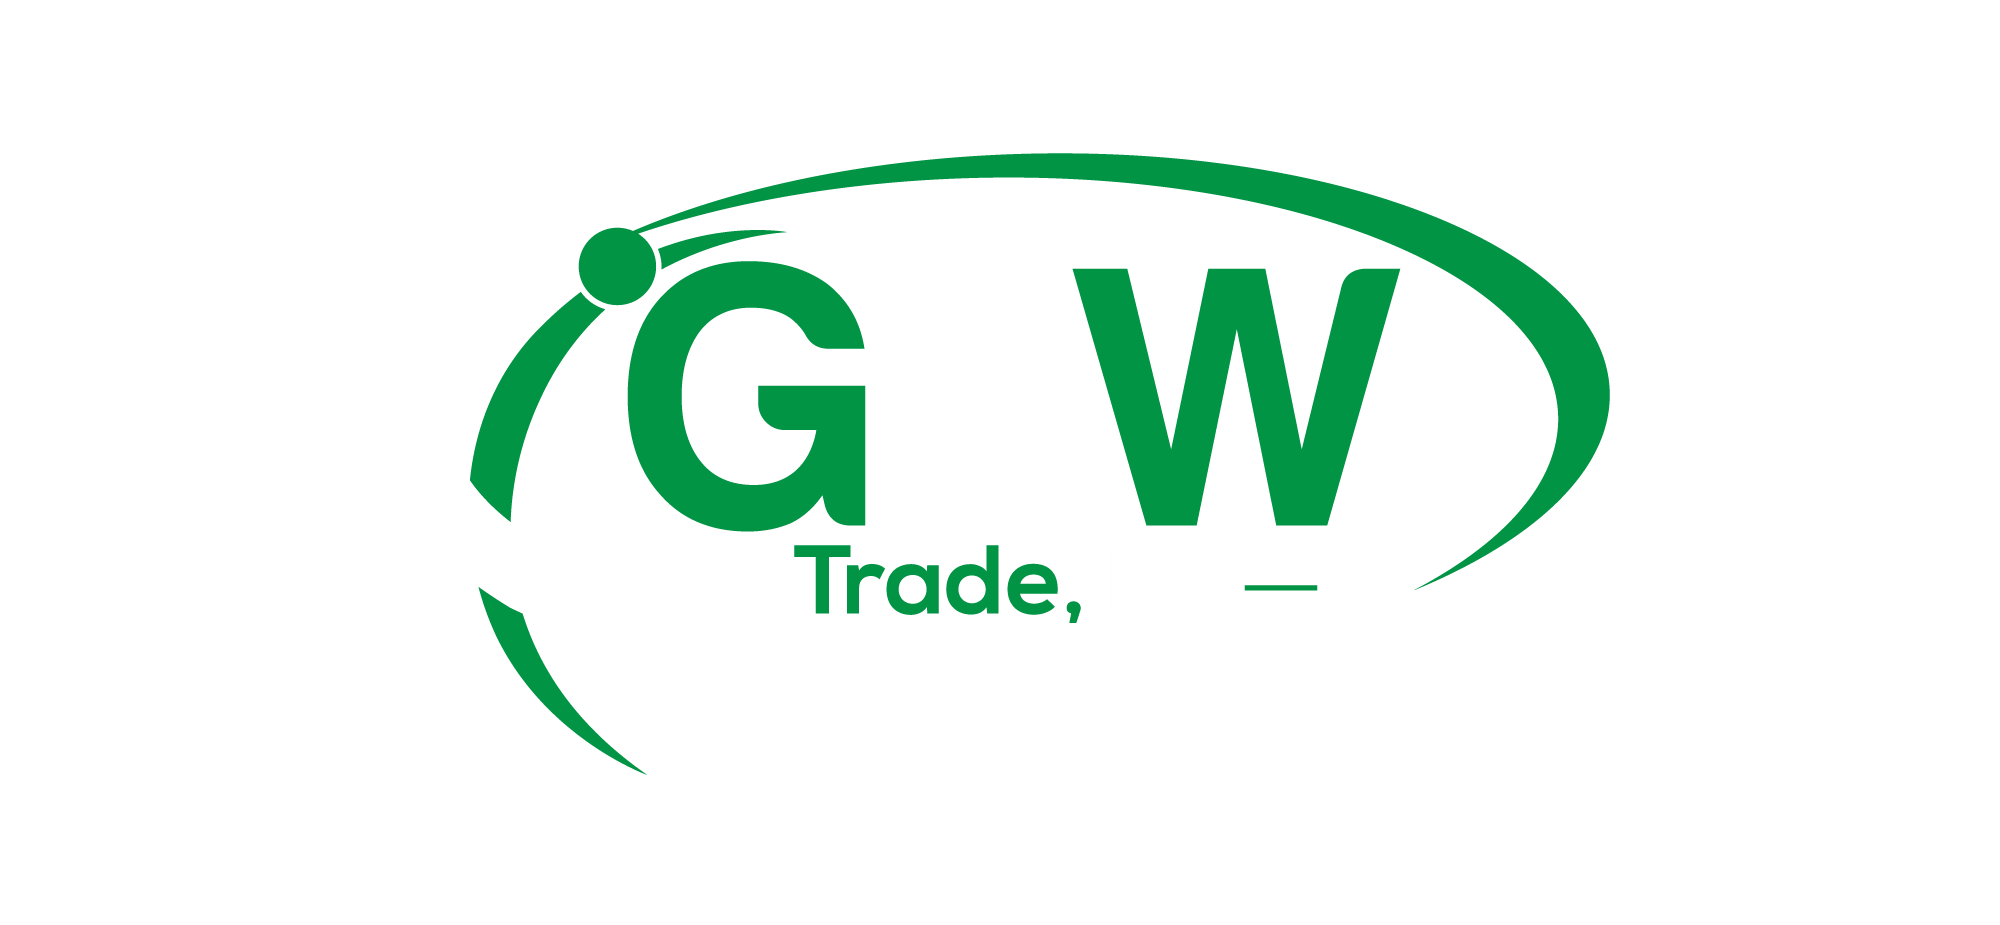 Gsw trade inc trade in your electronics toggle navigation 1betcityfo Gallery